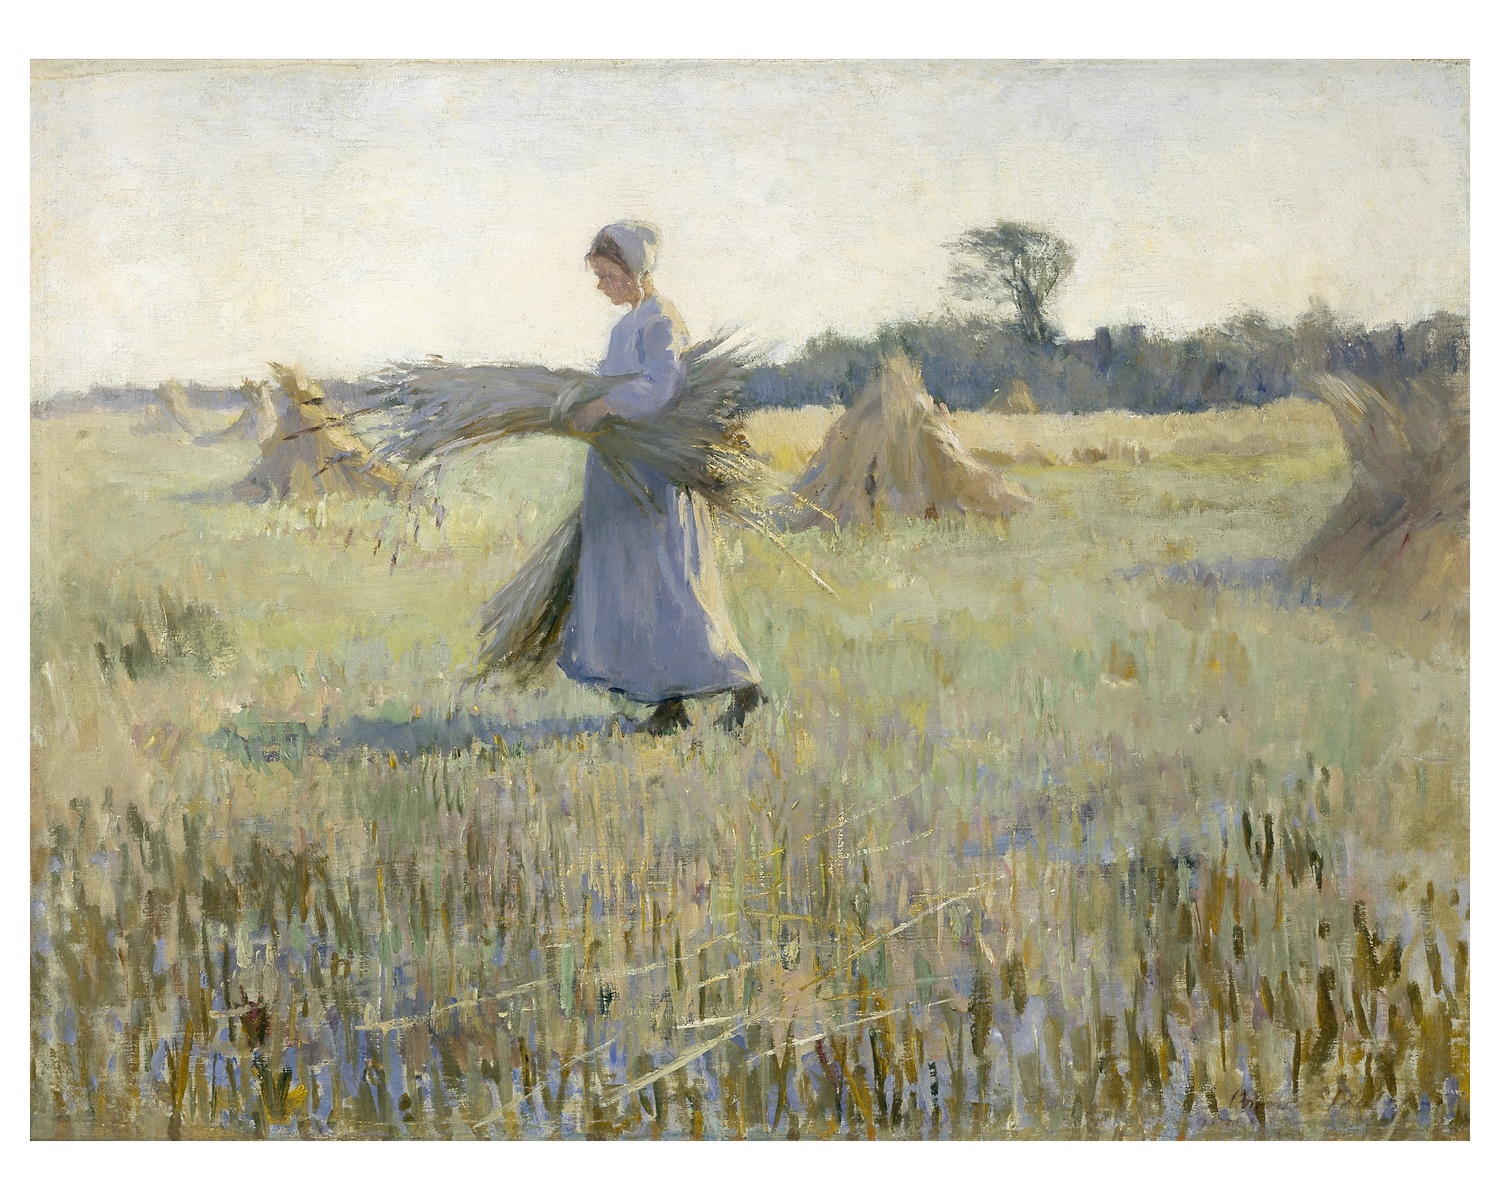 Girl carrying Sheaves (Harvest - Holland), c. 1895, Anna Henry, Private collection